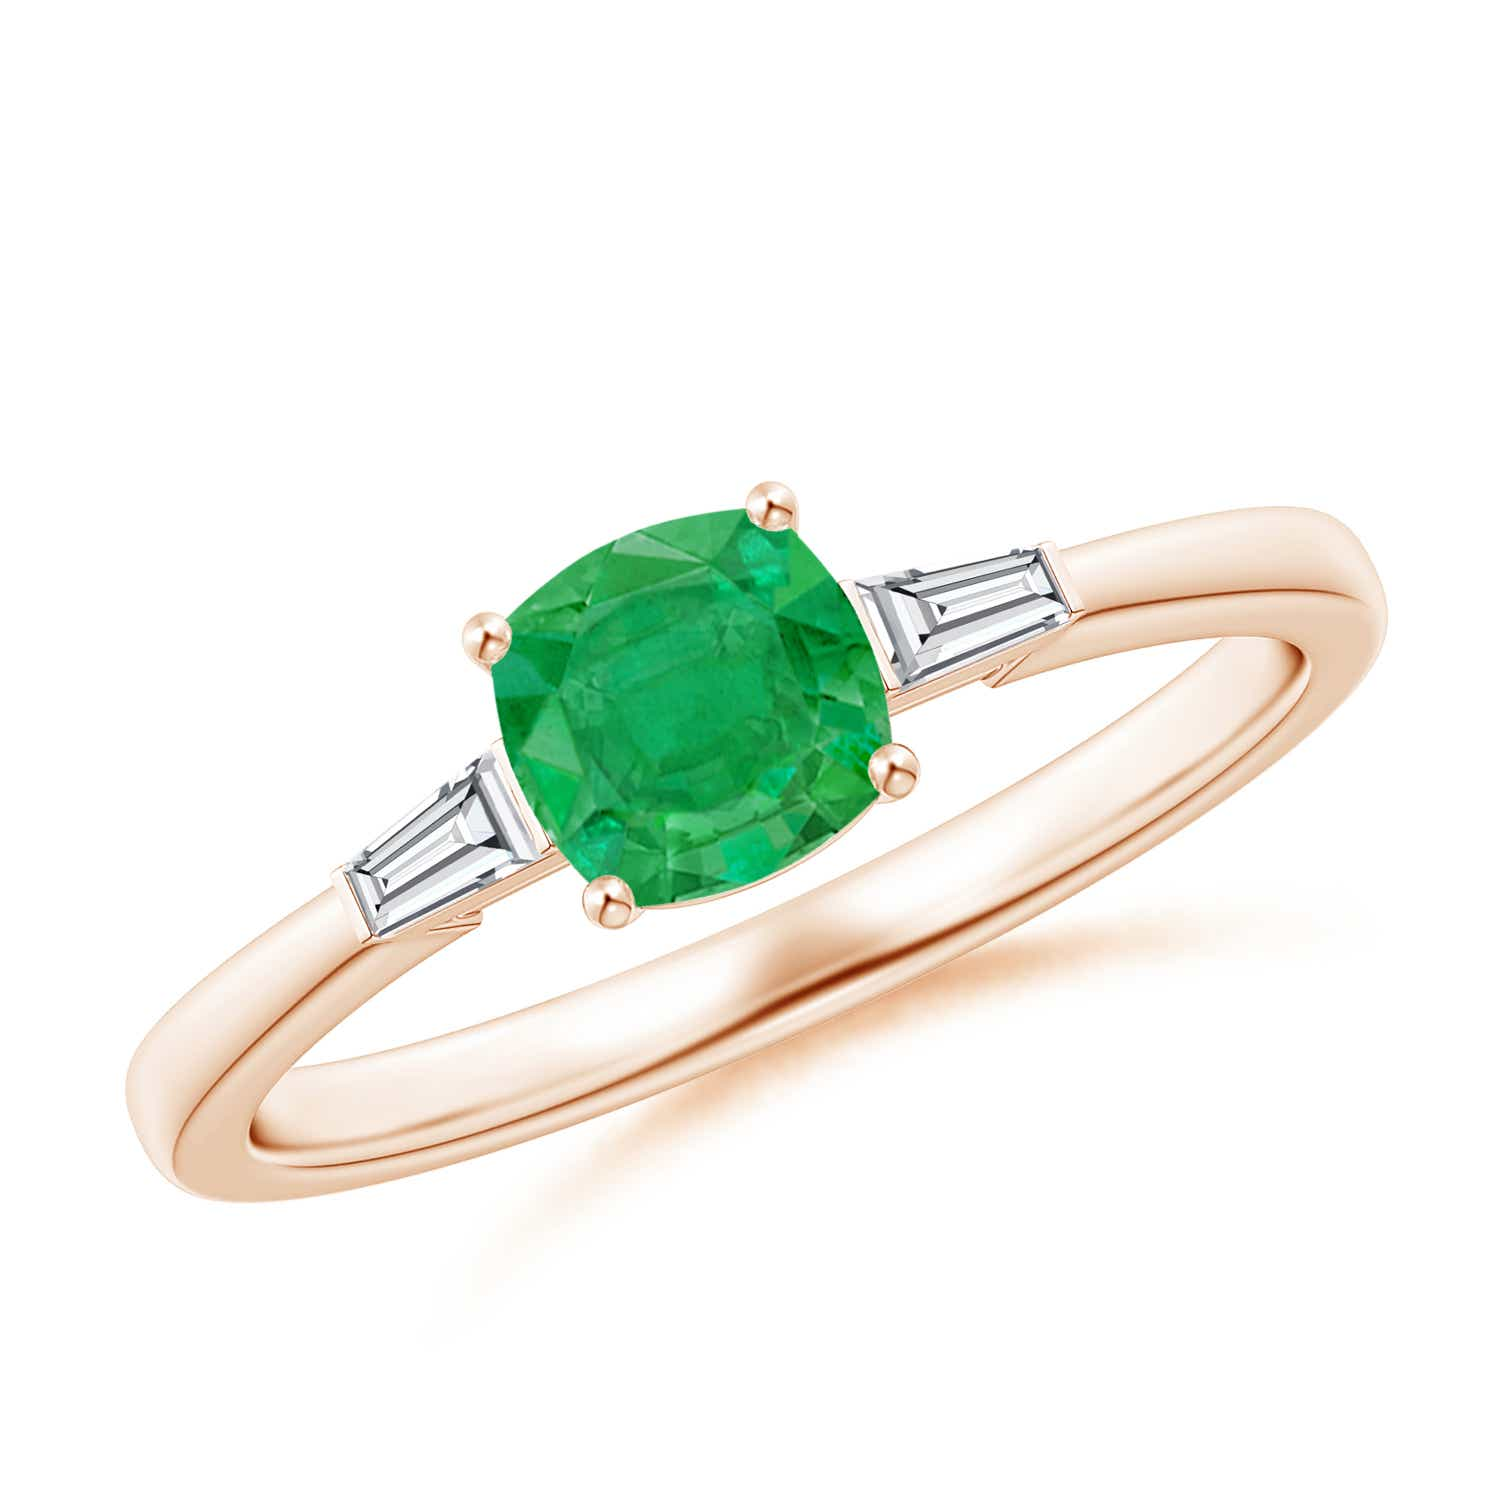 Cushion Emerald Ring with Bar-Set Tapered Baguette Diamonds